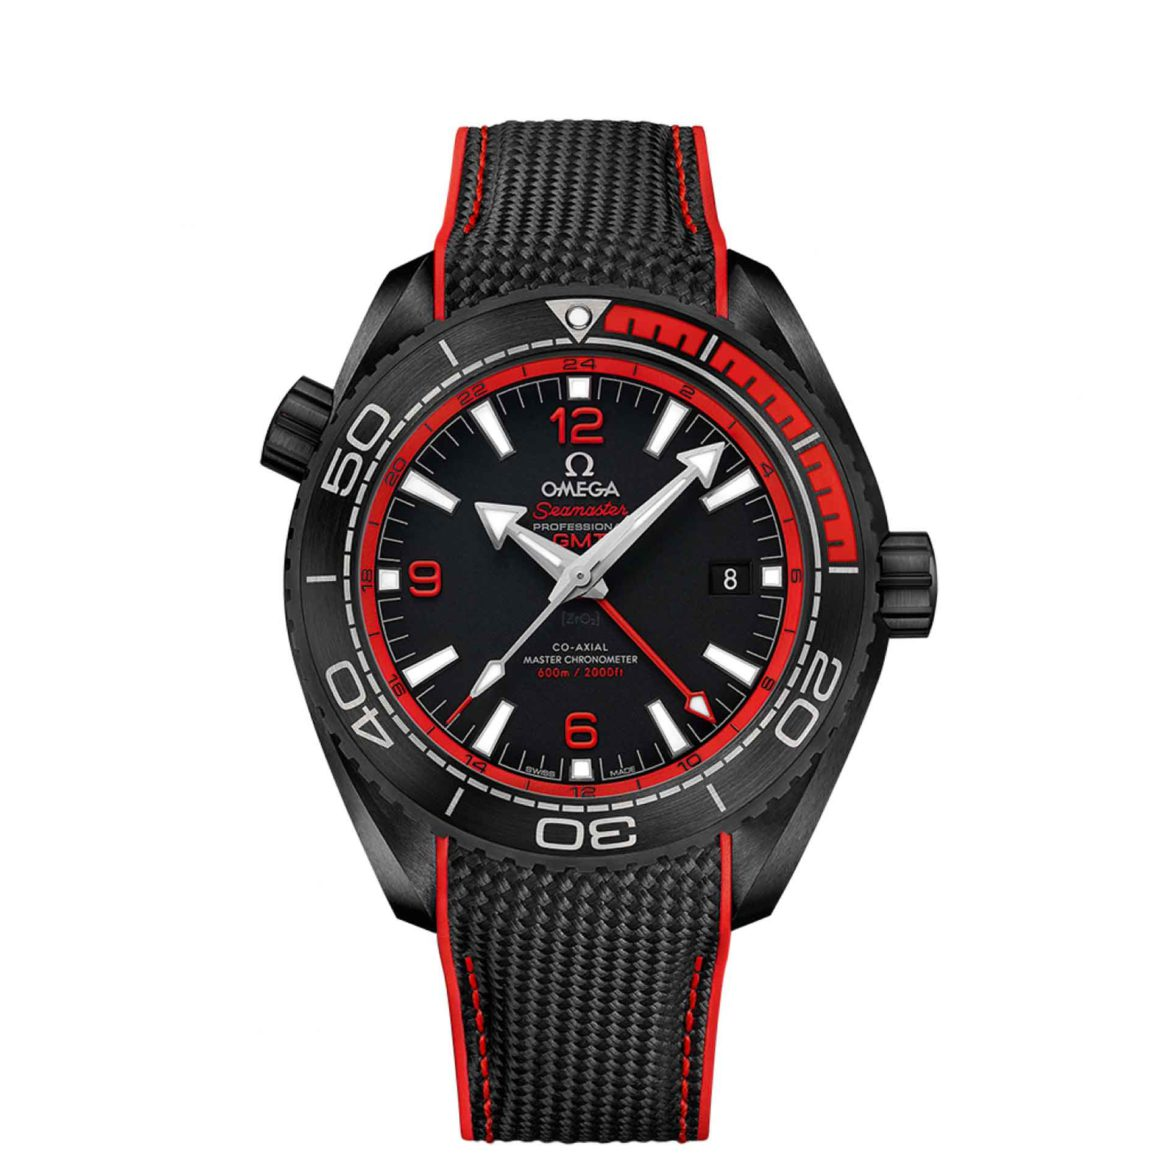 Omega Seamaster Planet Ocean 600M Co-axial Master Chronometer GMT Deep Black in Red 215.92.46.22.01.003